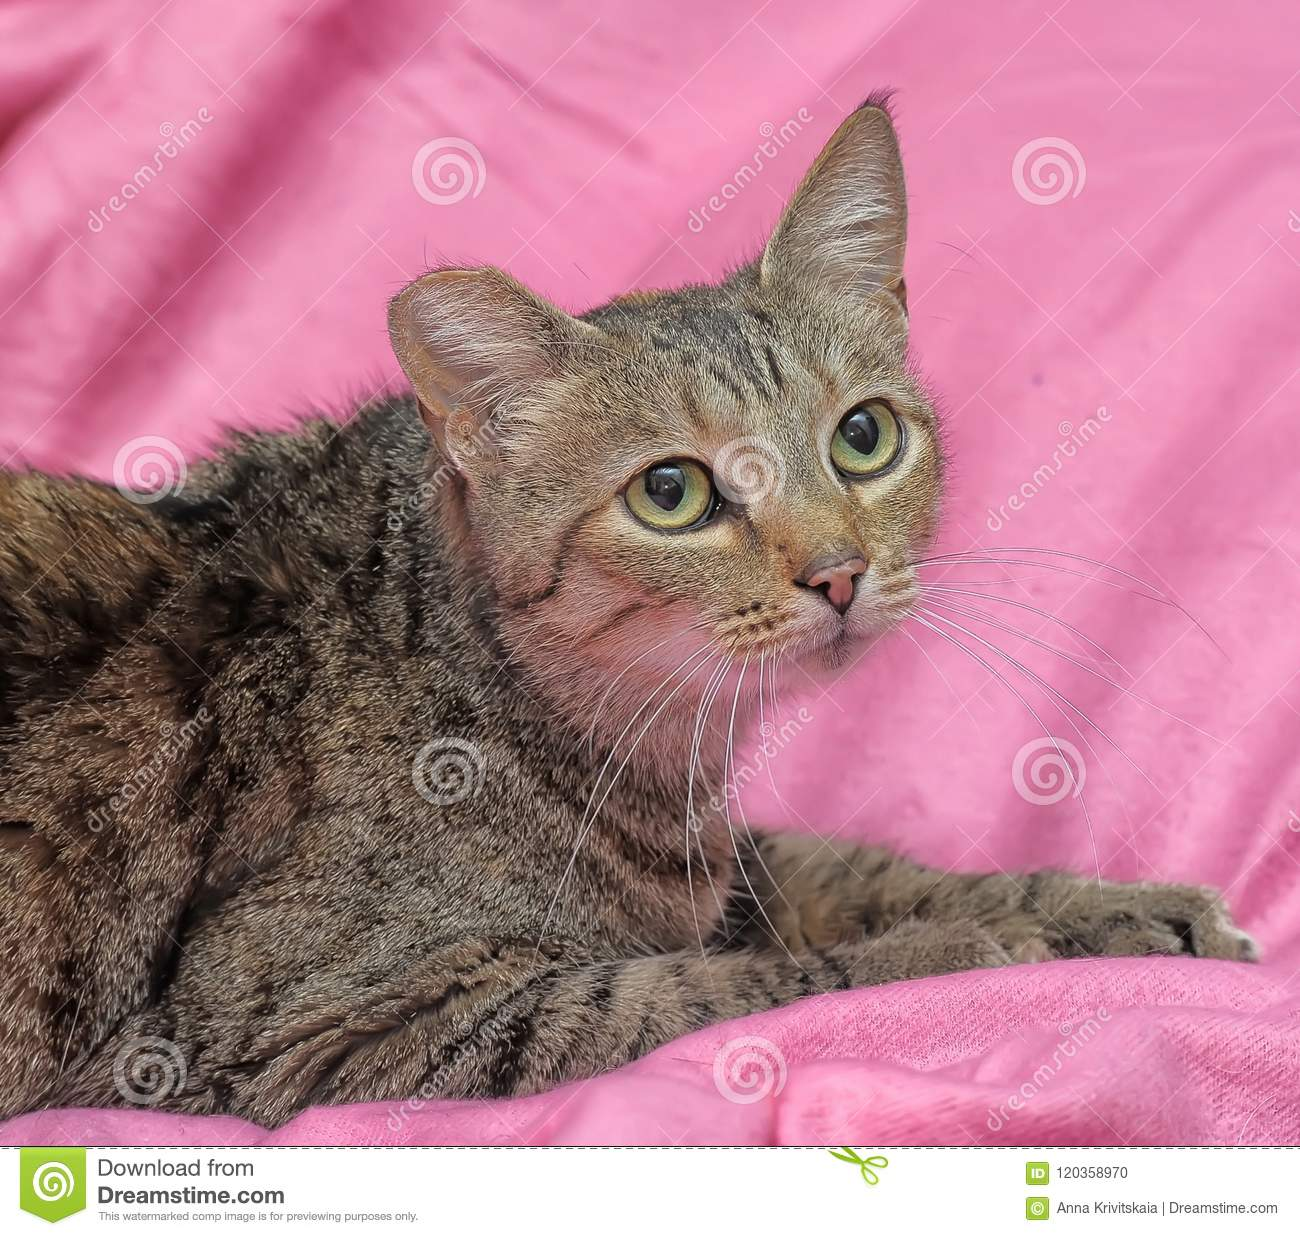 striped cat with a clipped ear